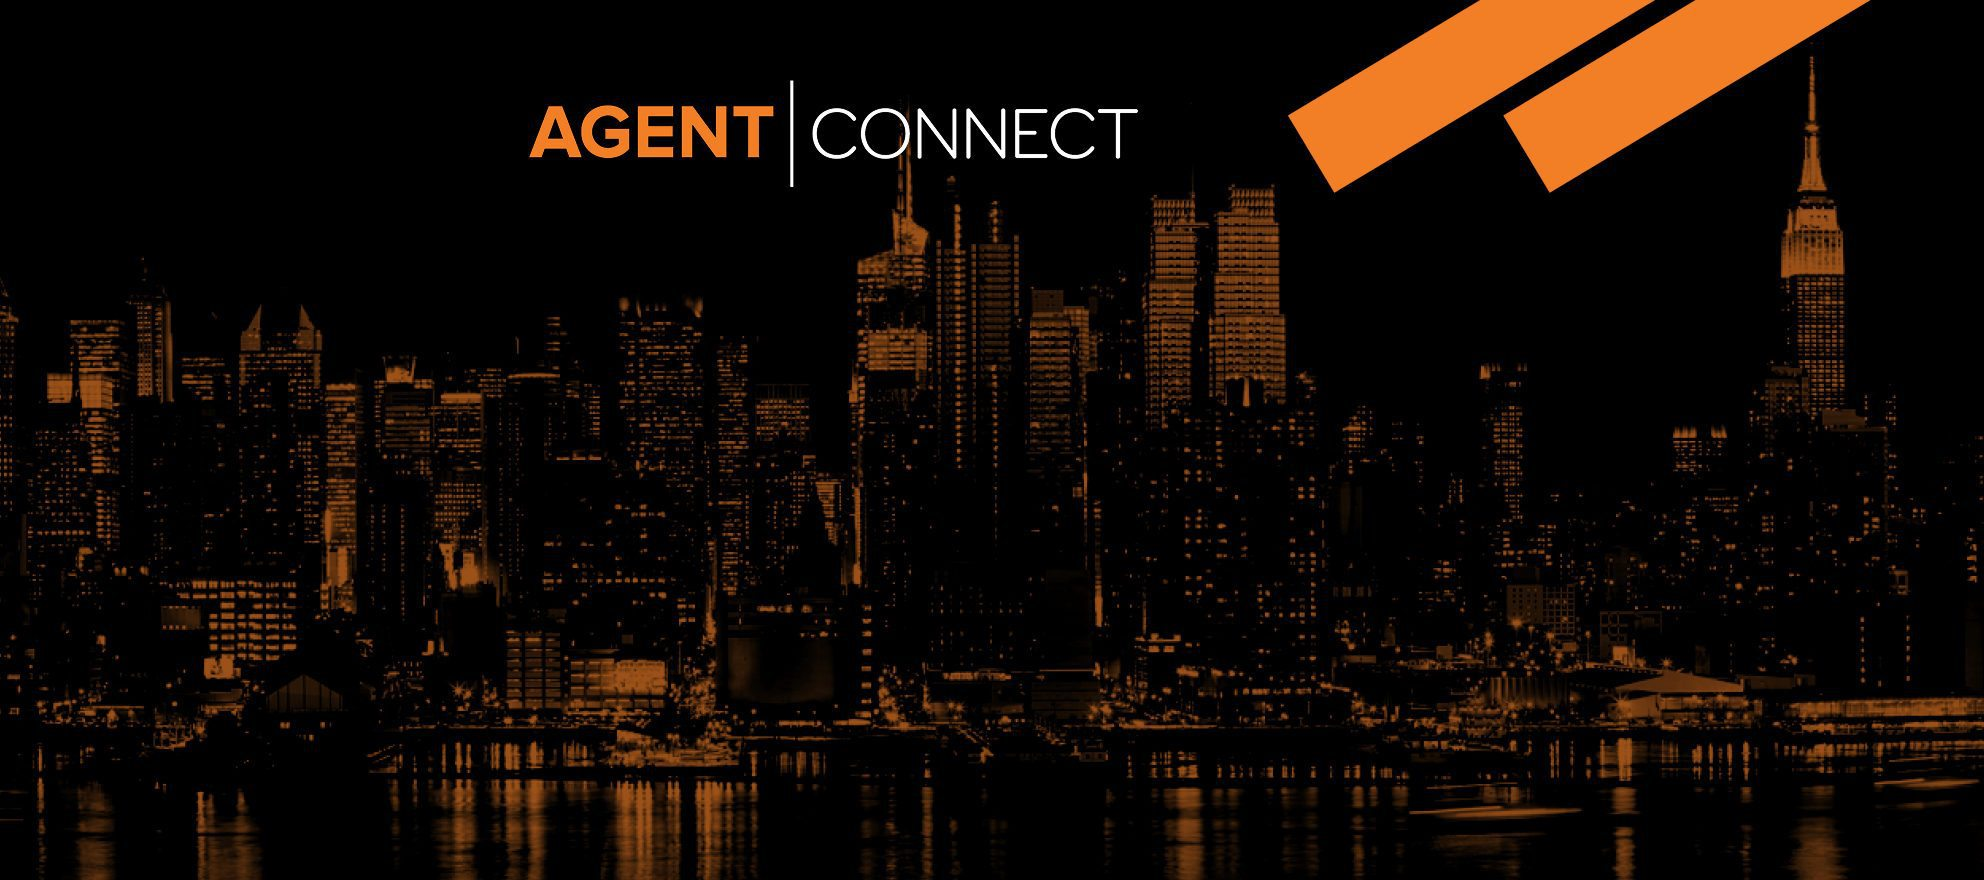 Agent Connect: Learn secrets from top agents to grow your business